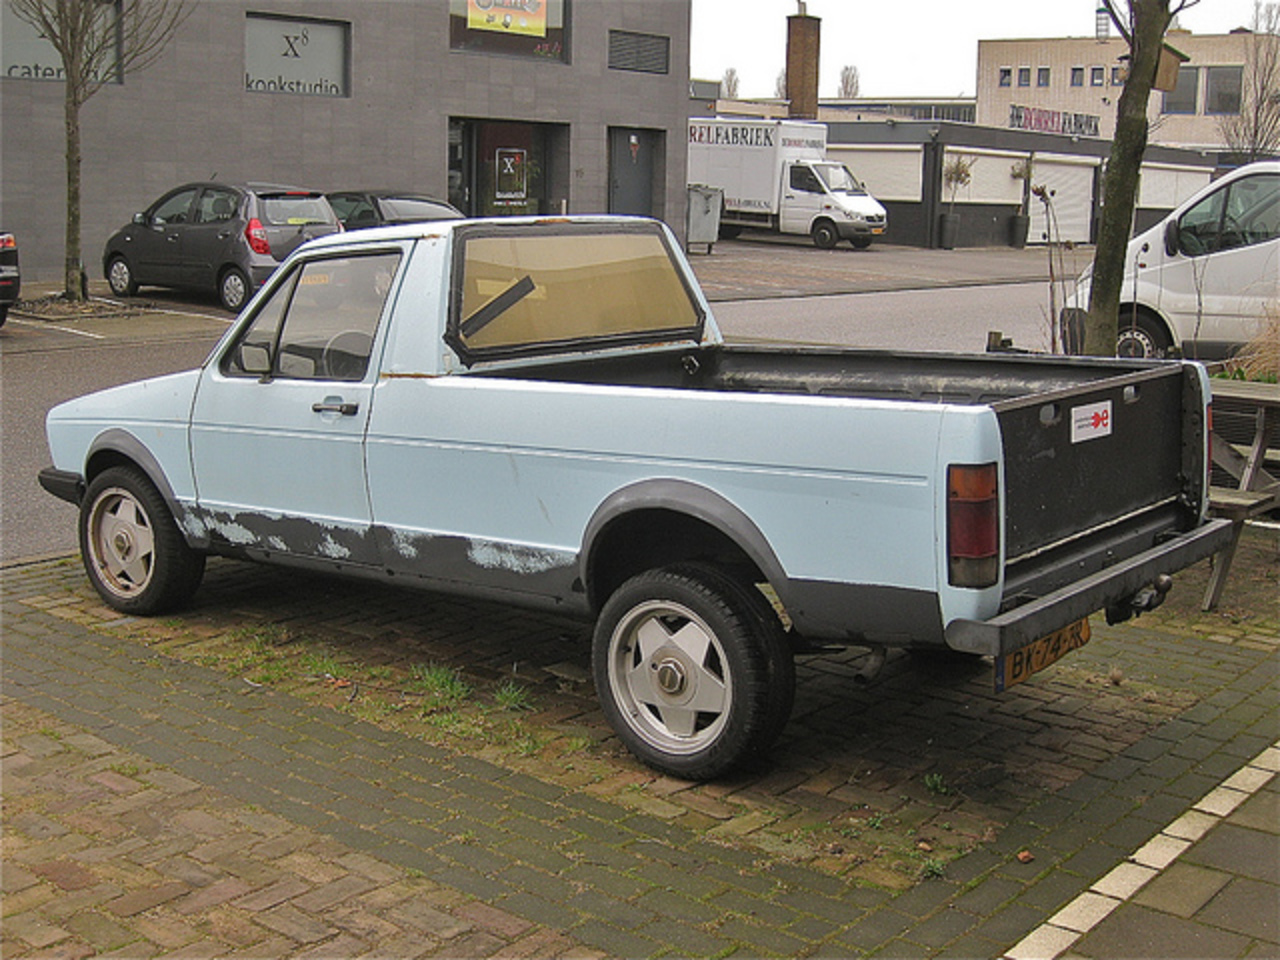 VOLKSWAGEN Caddy Diesel Pick-up, 1985. The first generation VW Golf-based